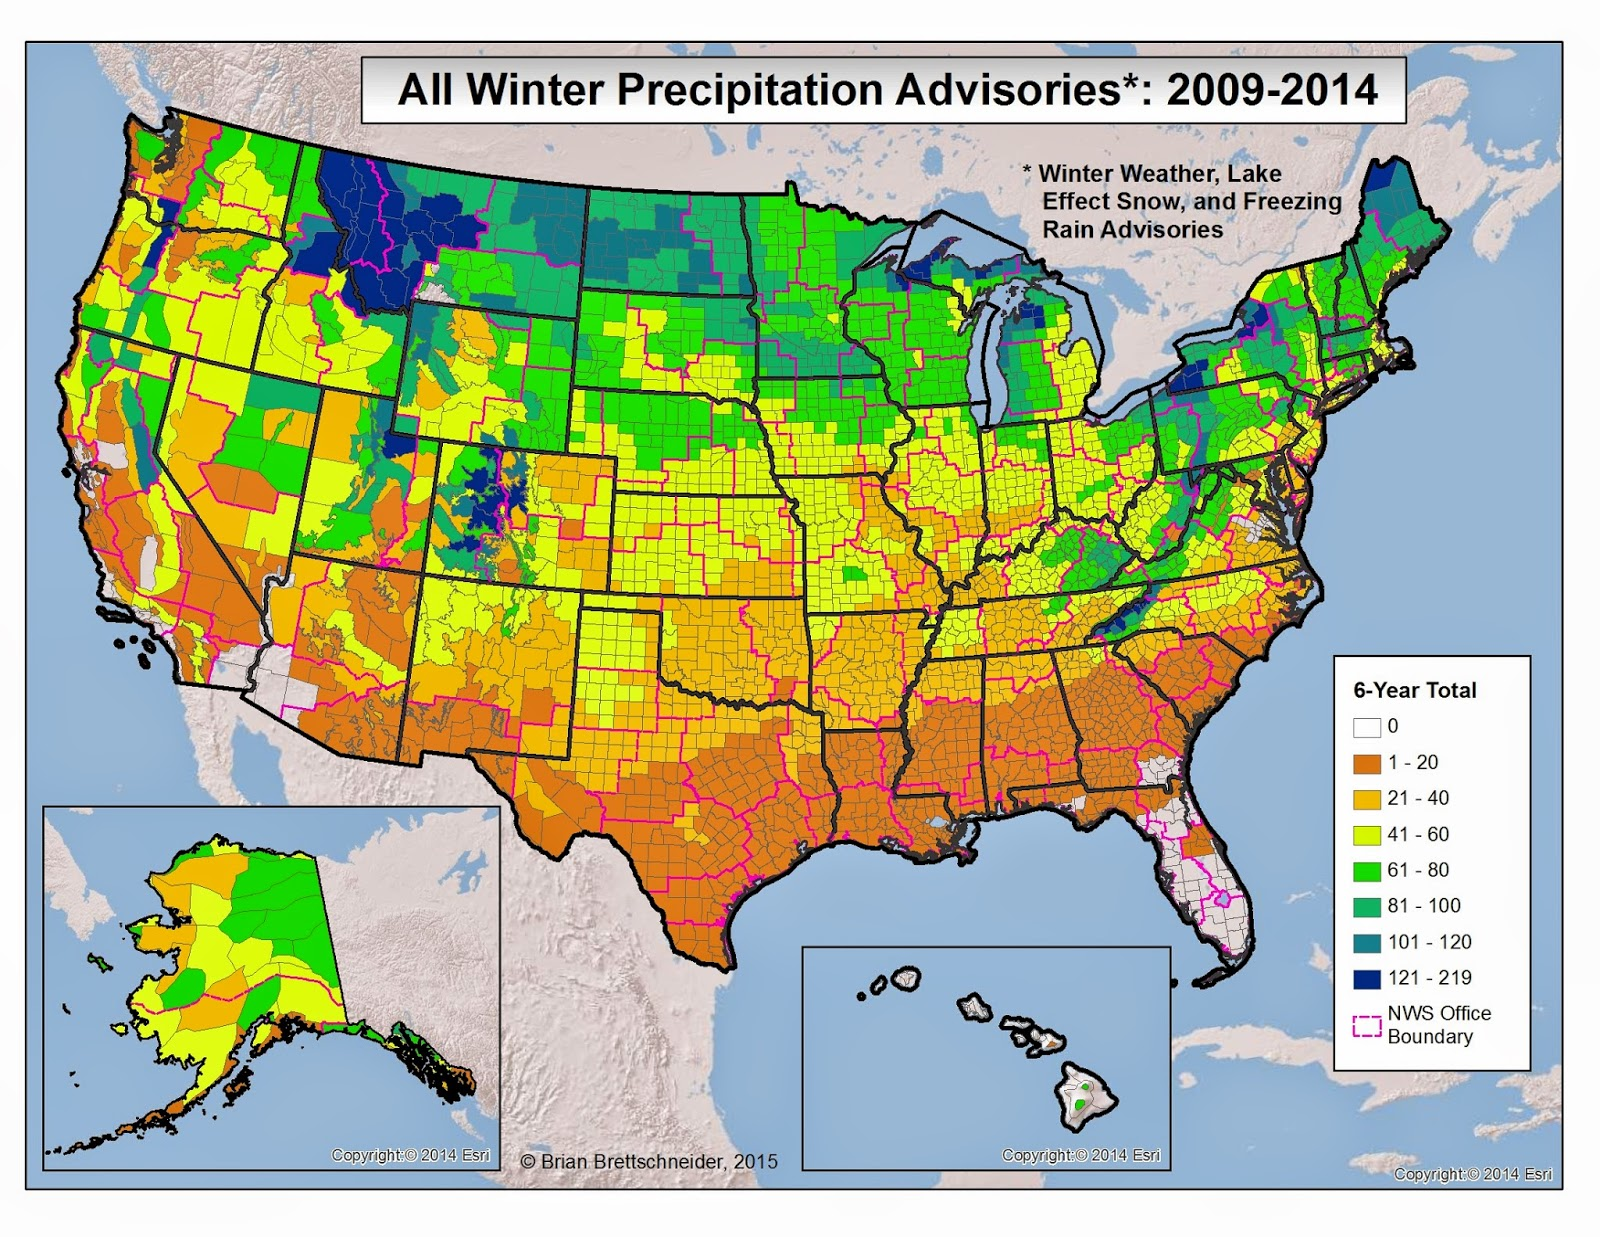 Brian Bs Climate Blog US Winter Weather Advisories And Warnings - Nws us regions map